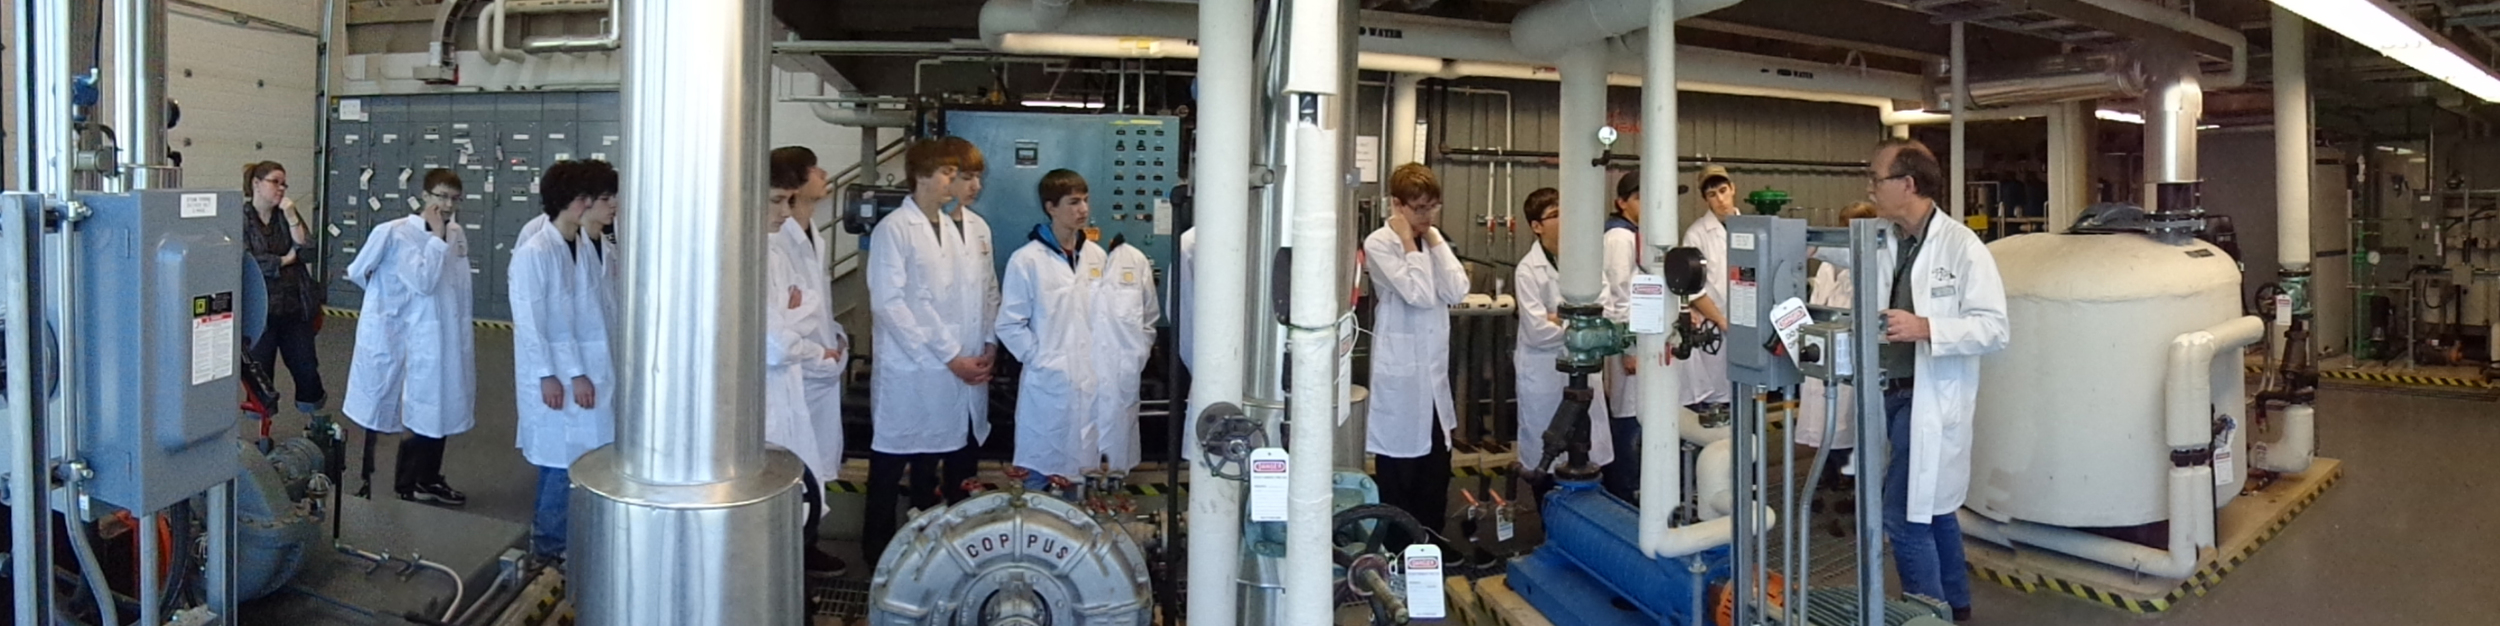 Praxis' Operation Thoth Conference participants view the Power Engineering facilities at Medicine Hat College.